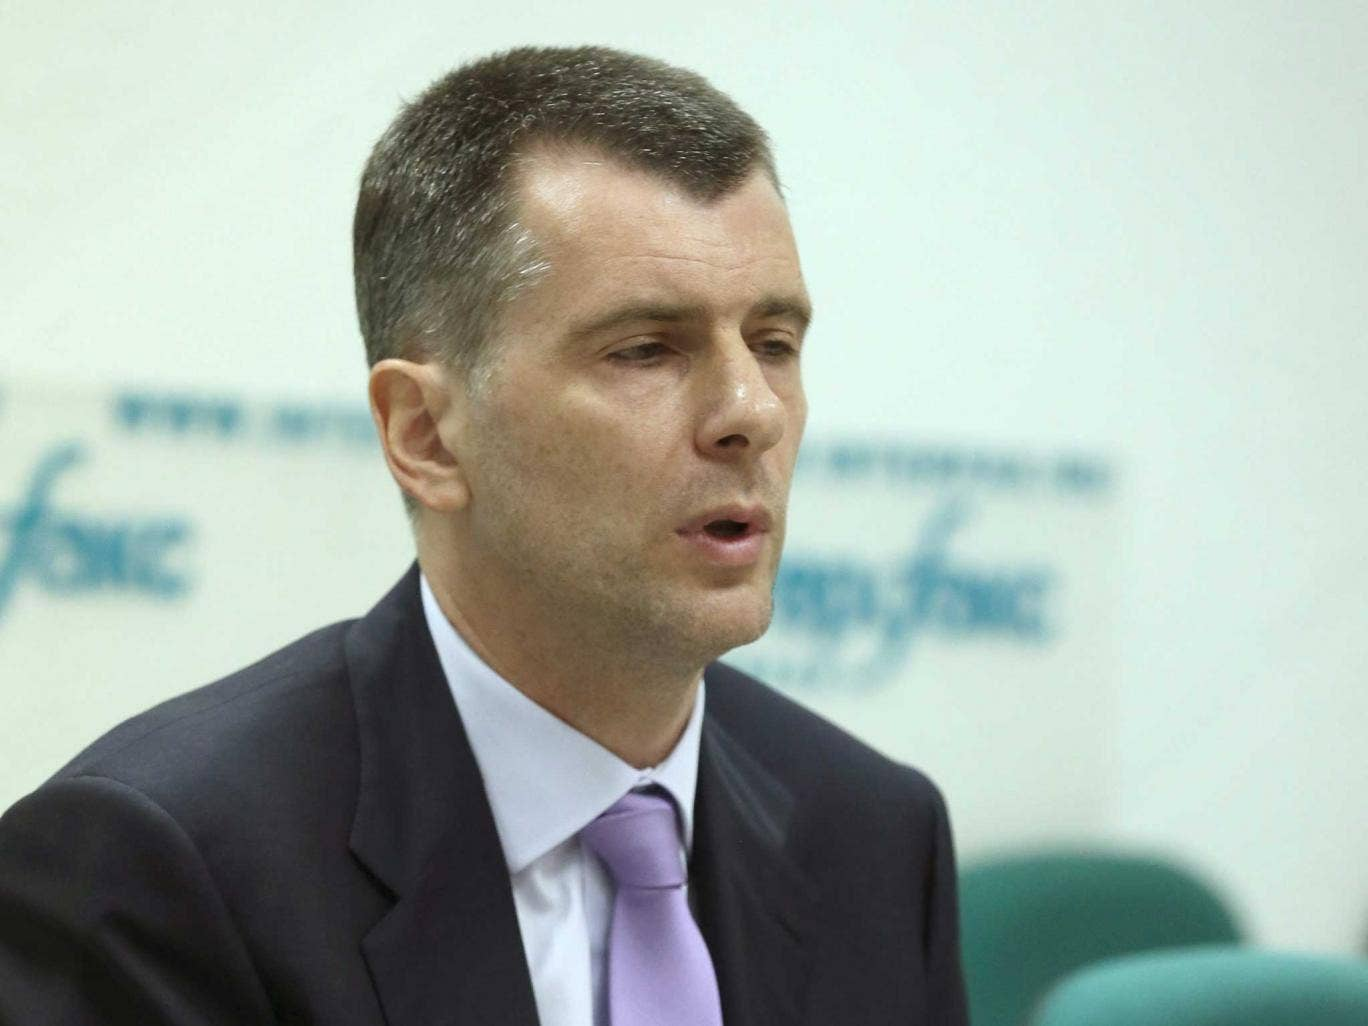 Mikhail Prokhorov speaking in Moscow today